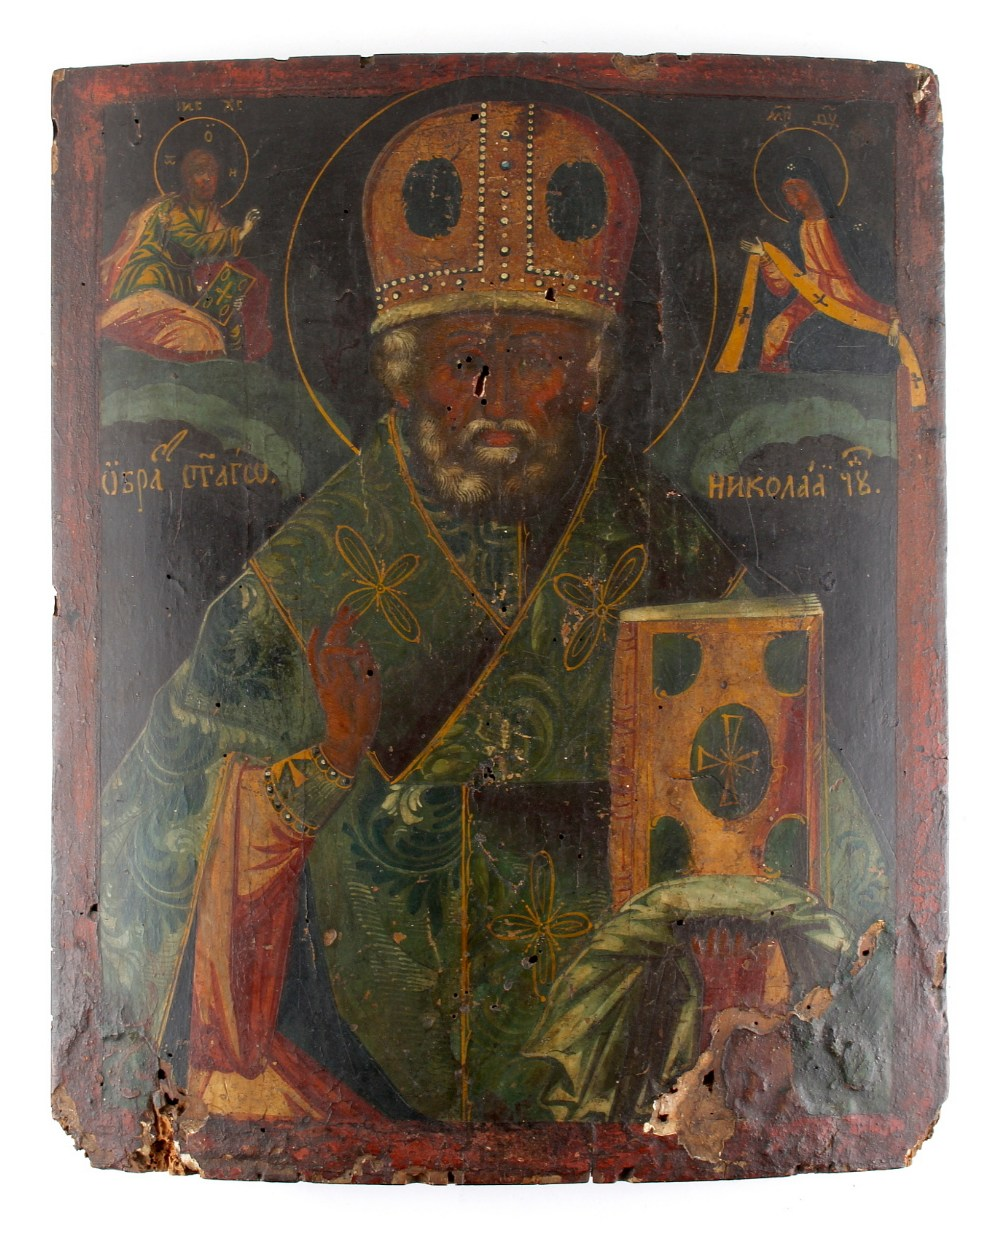 Lot 202 - Property of a deceased estate - a Russian icon of St. Nicholas, depicted wearing a jewelled hat,